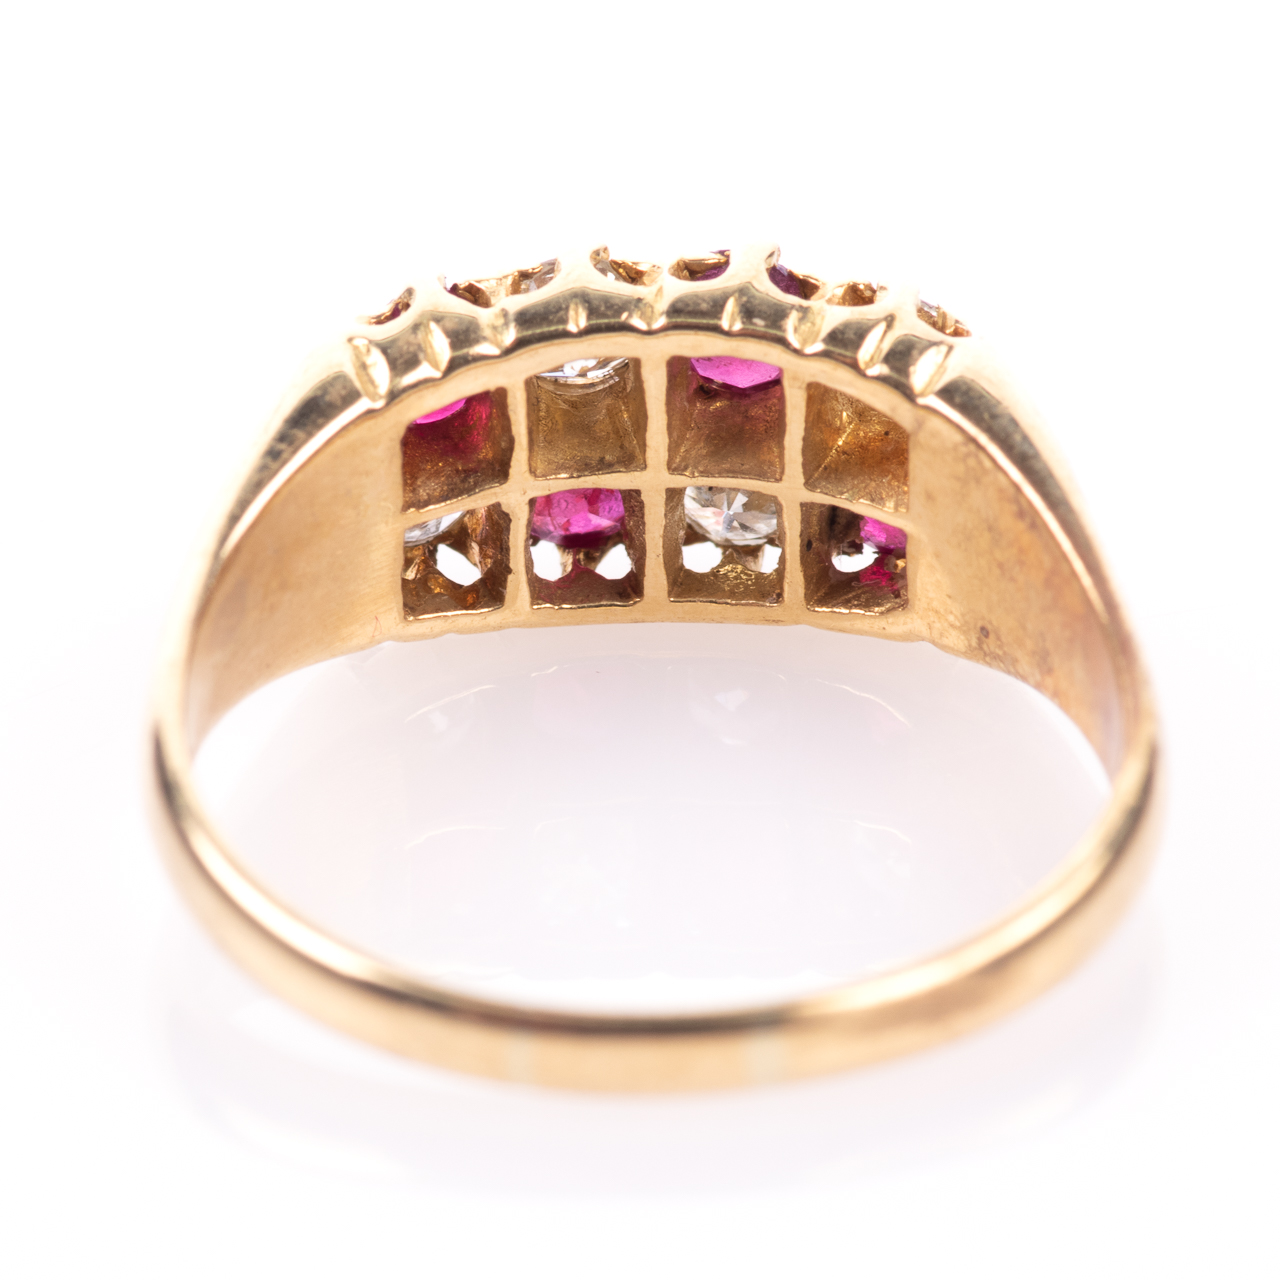 18ct Gold 0.60ct Ruby & 0.50ct Diamond Ring - Image 5 of 7